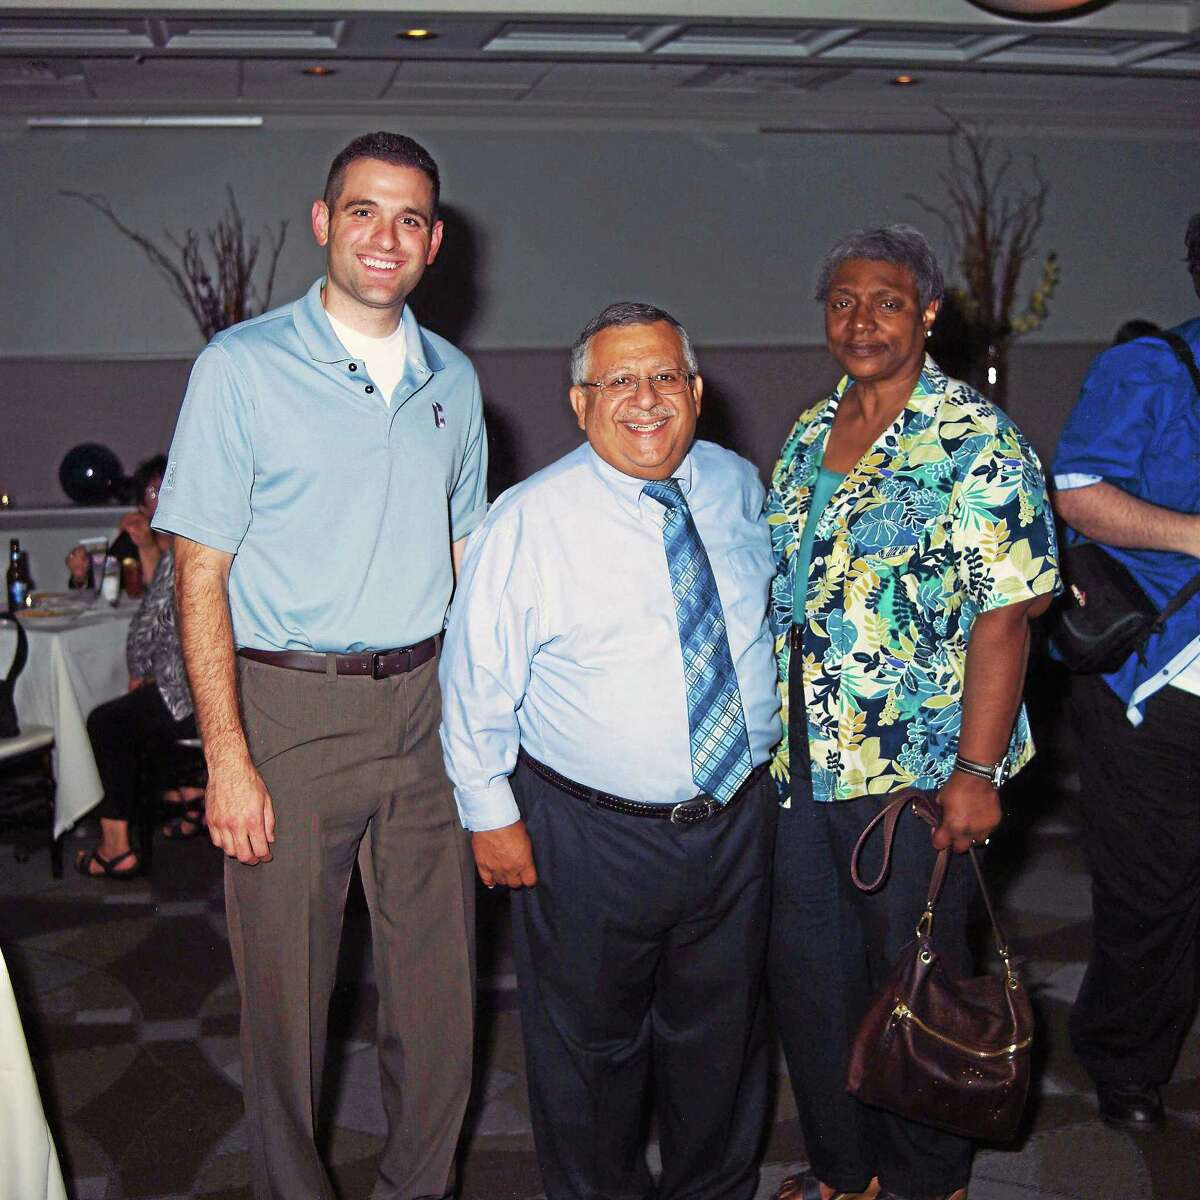 """Jeff Pugliese, left, and Jennifer De Kine, right, from the Middlesex County Chamber of Commerce, recently attended a retirement celebration for Rosario """"Riz"""" Rizzo, center, who is retiring from Pratt & Whitney after a long and distinguished career."""